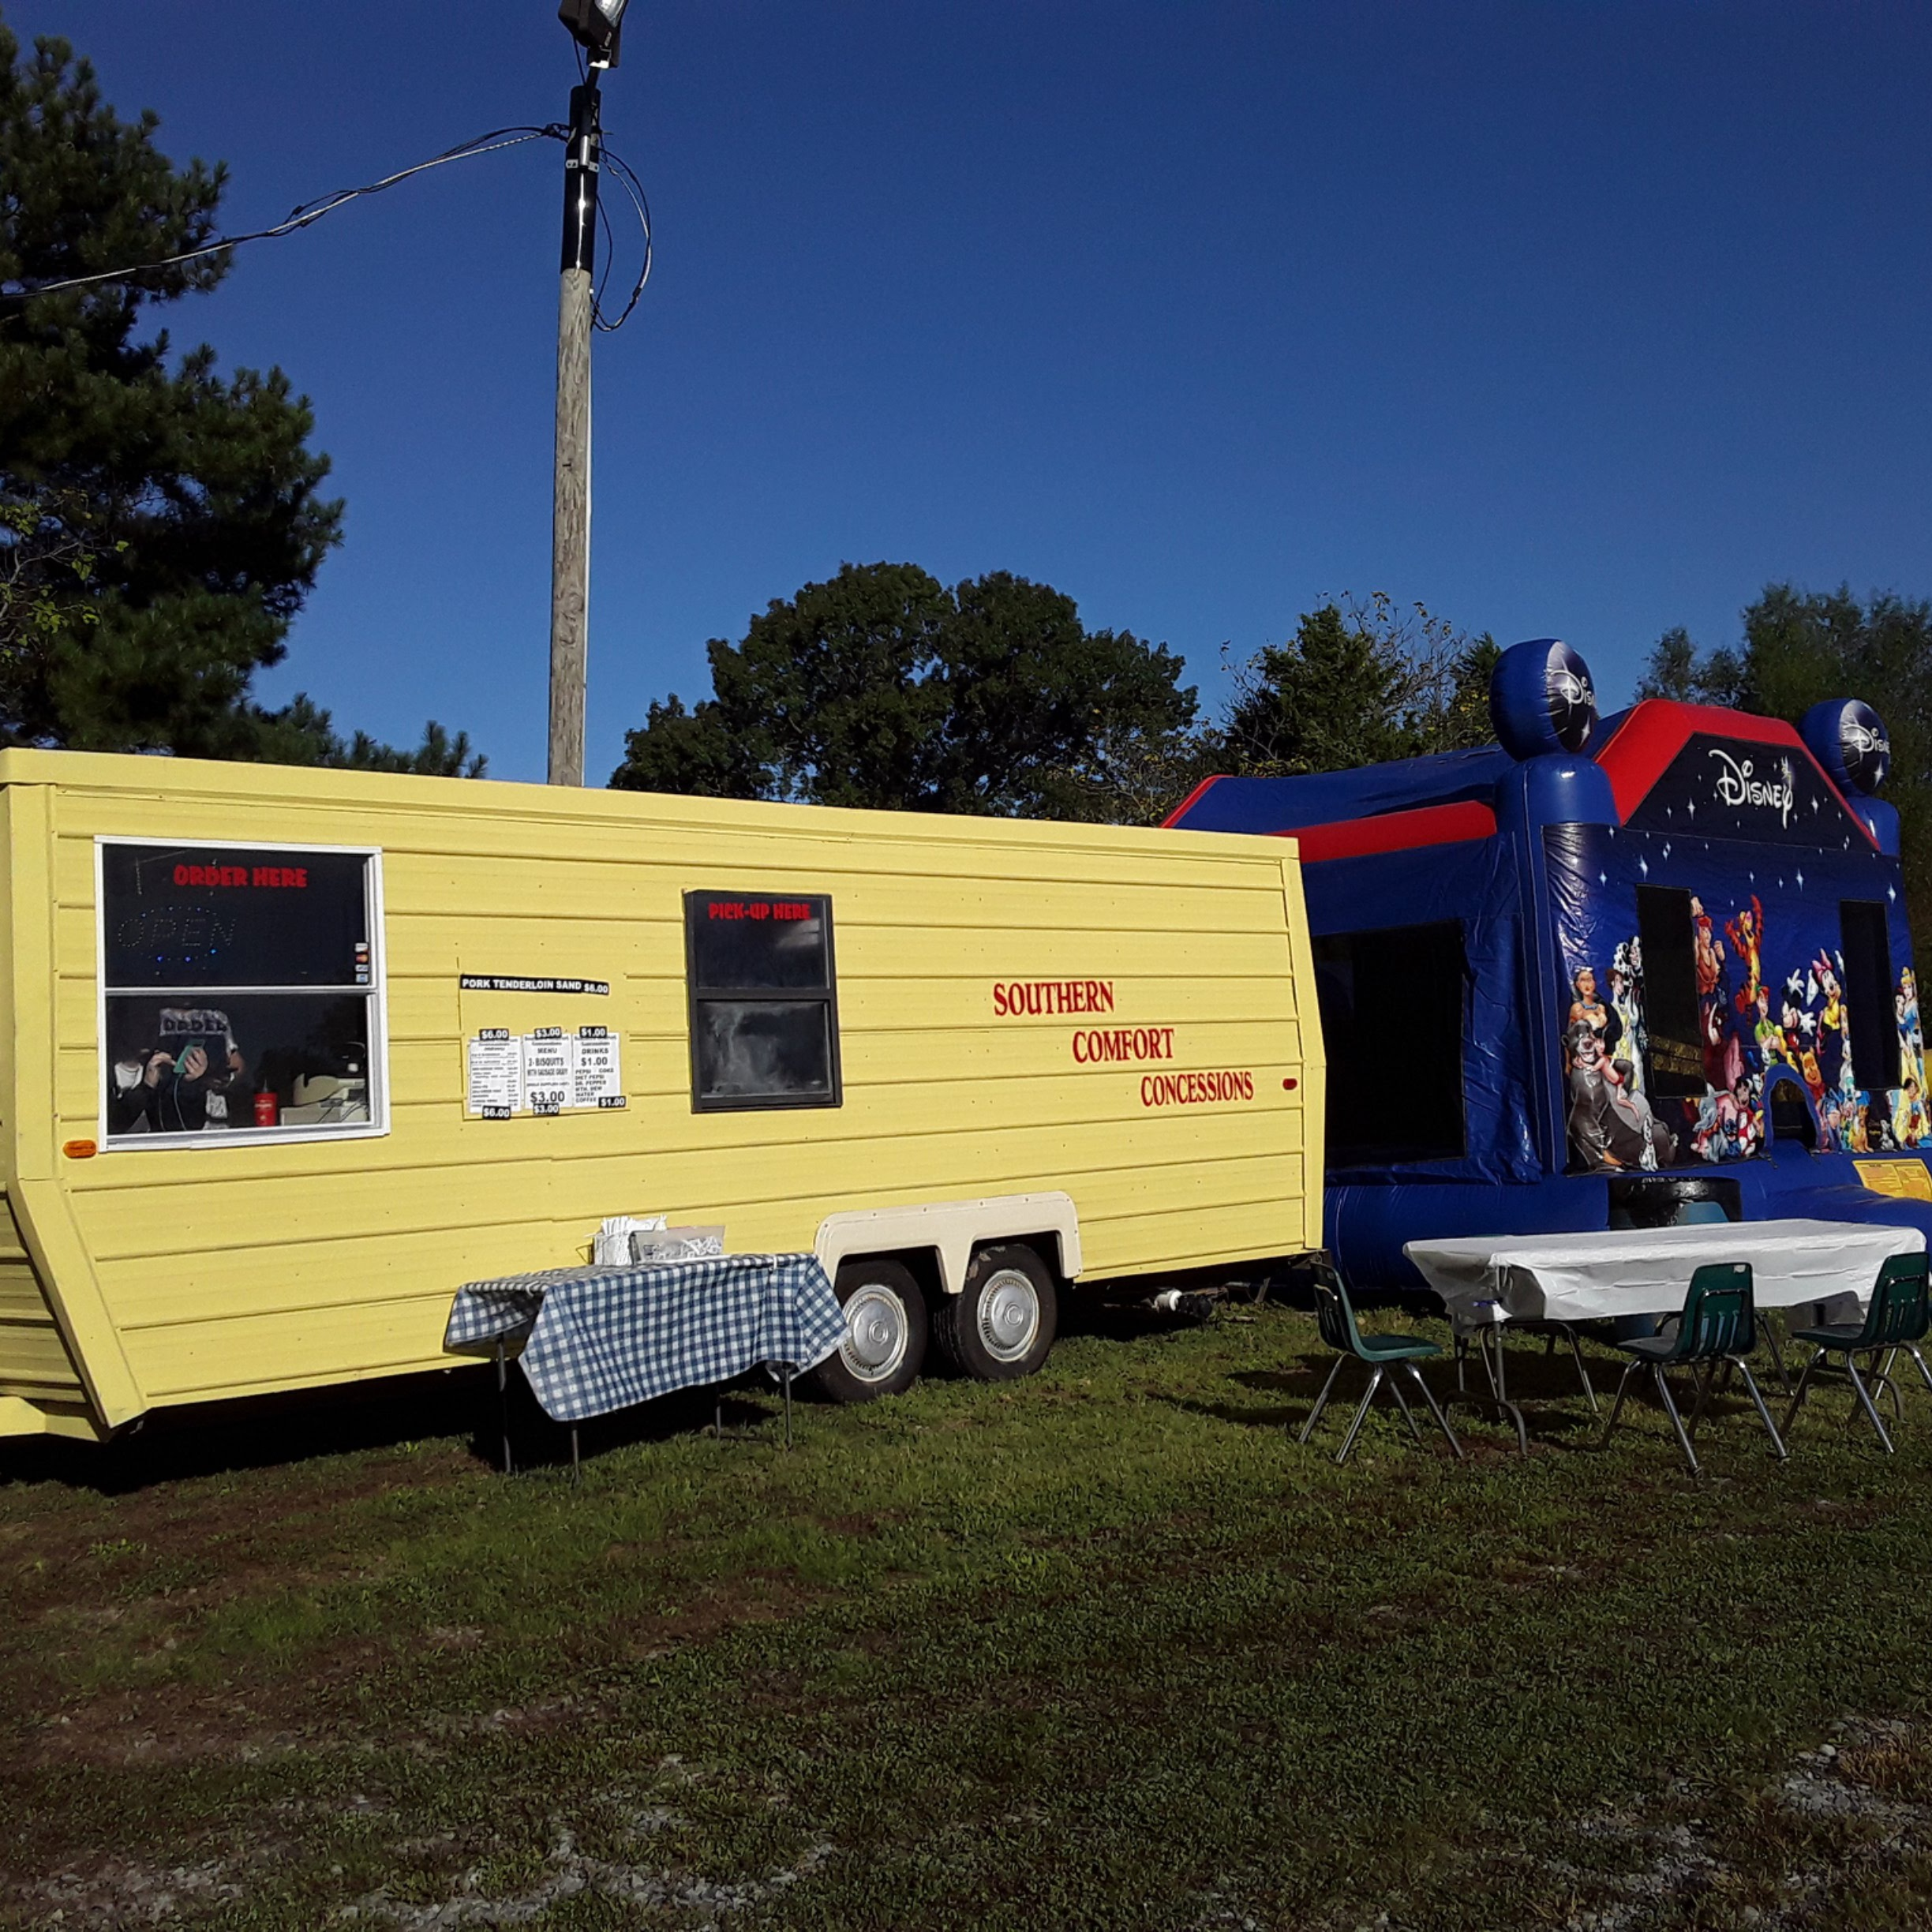 Southern Comfort Concessions  food truck profile image